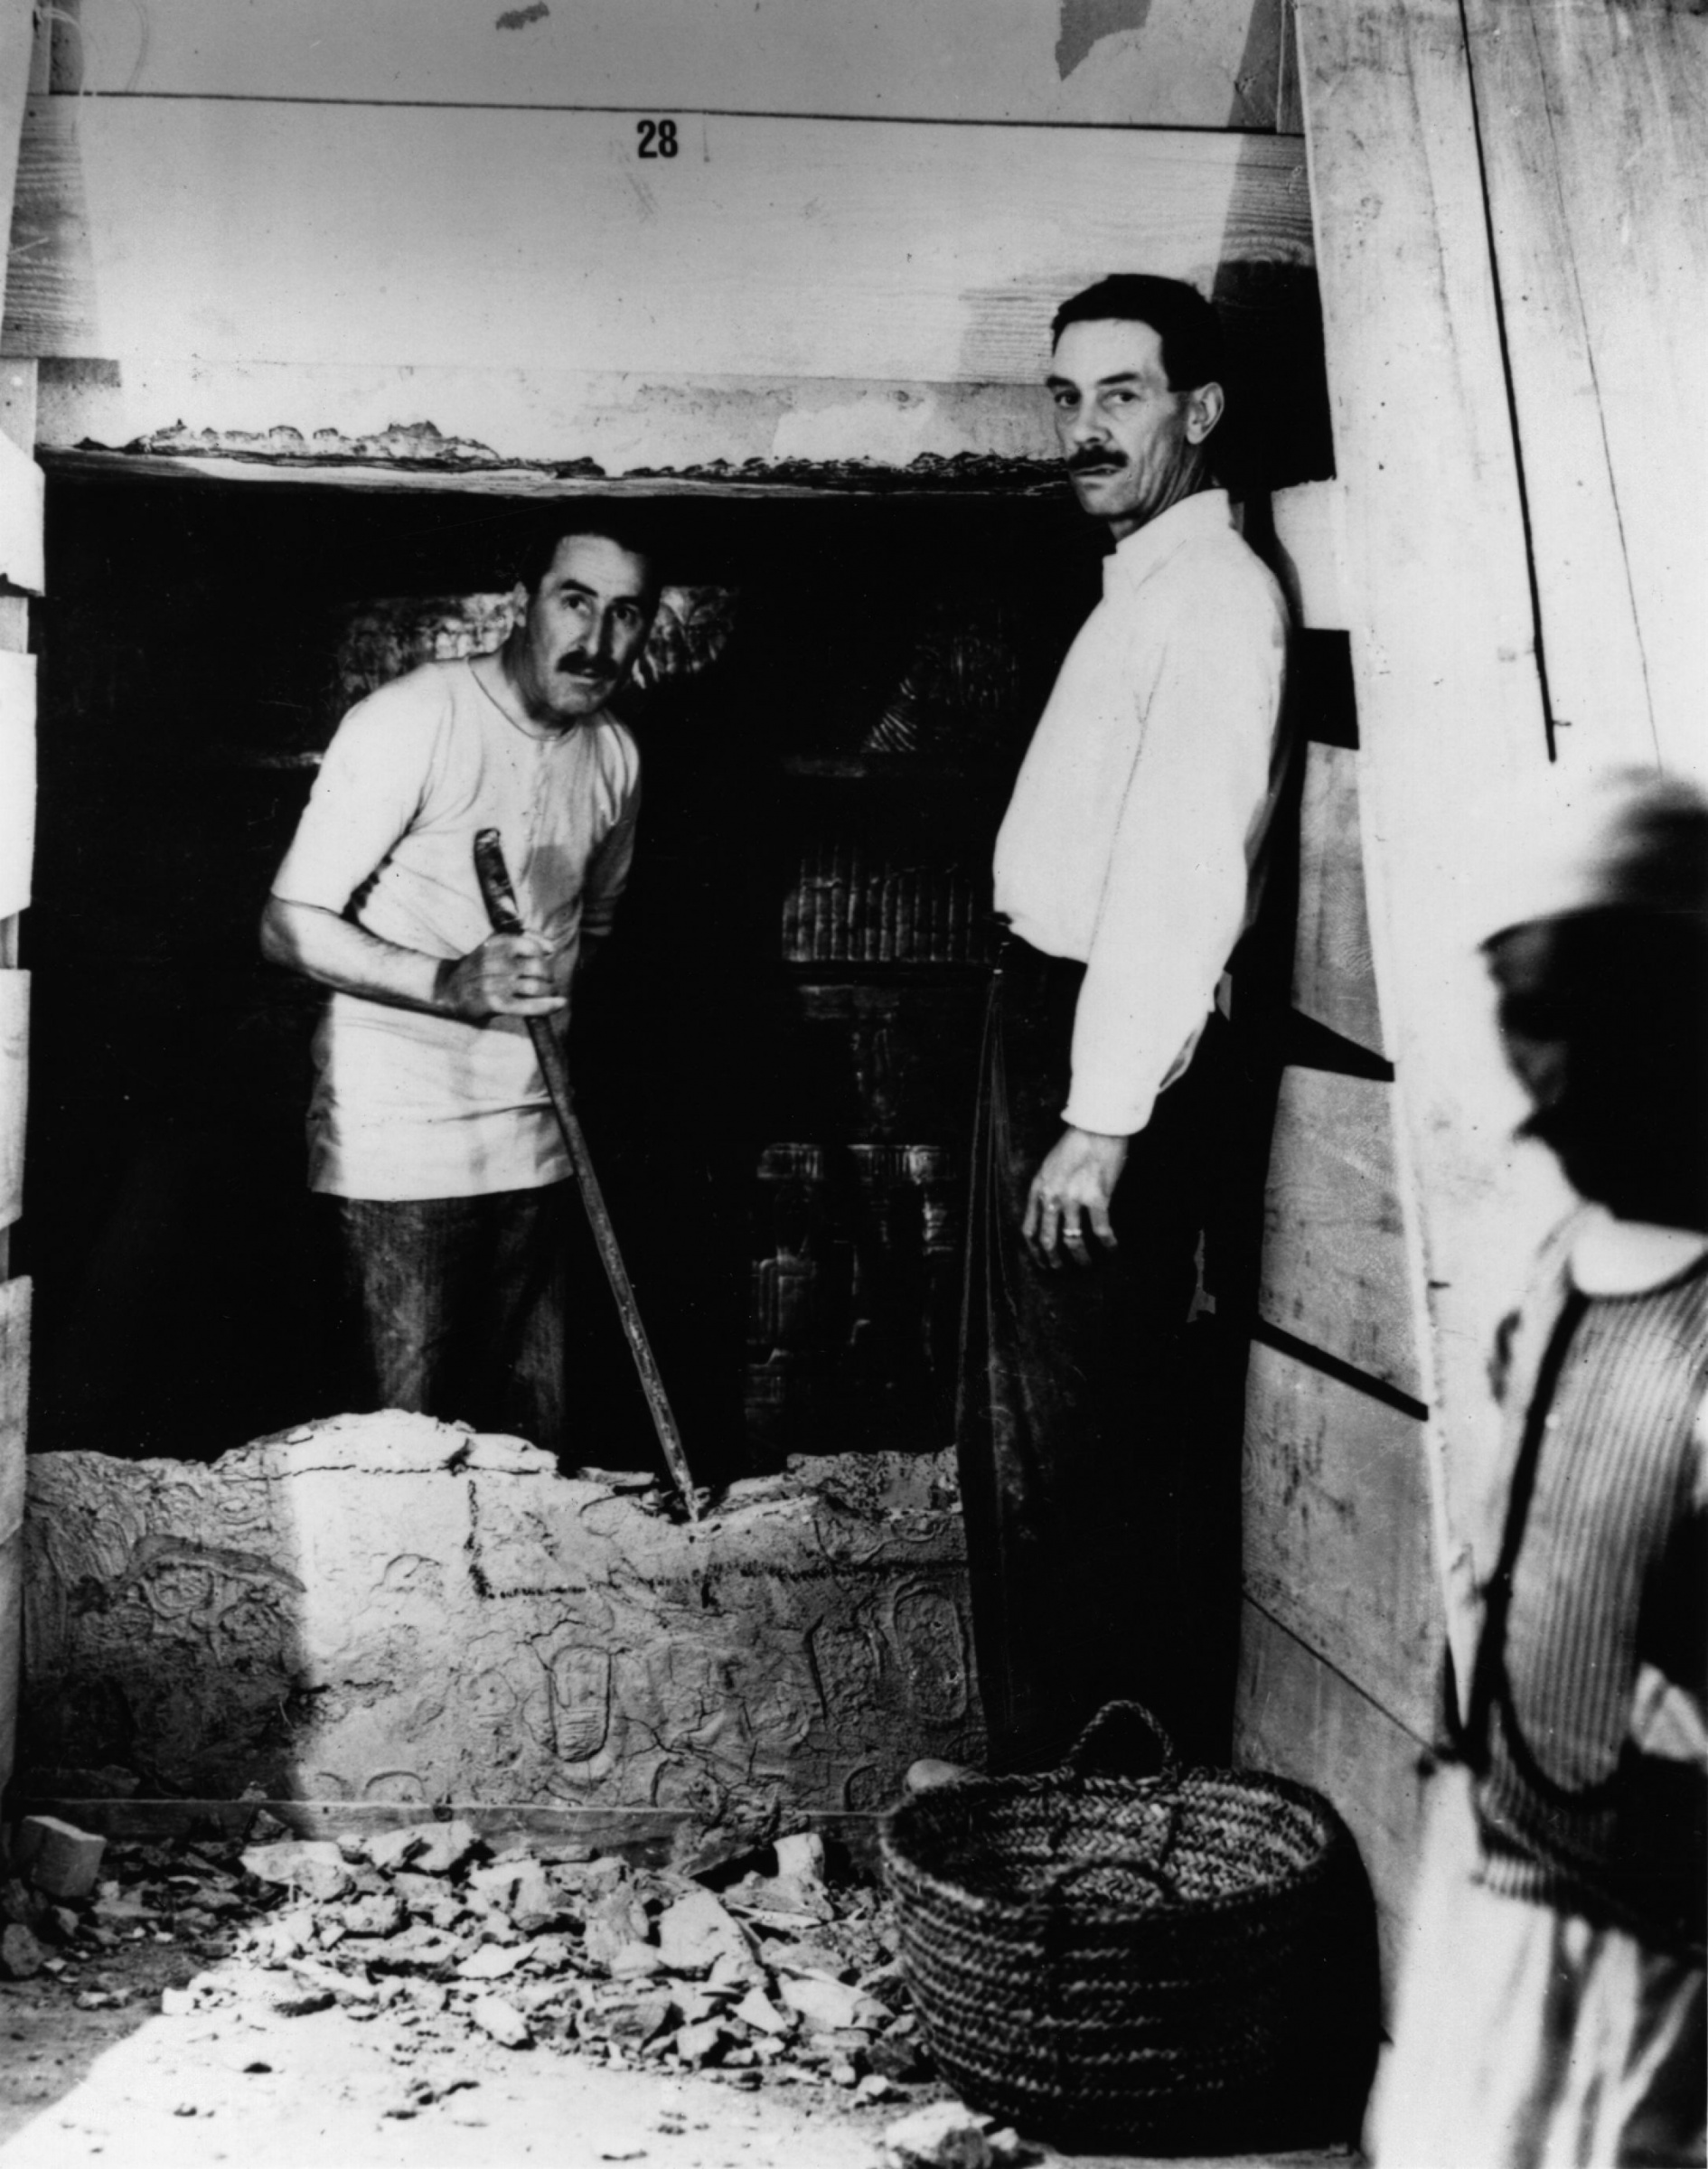 English egyptologist Howard Carter and Mr Mace opening the wall of the inner chamber of Tutankhamun's tomb, 1922